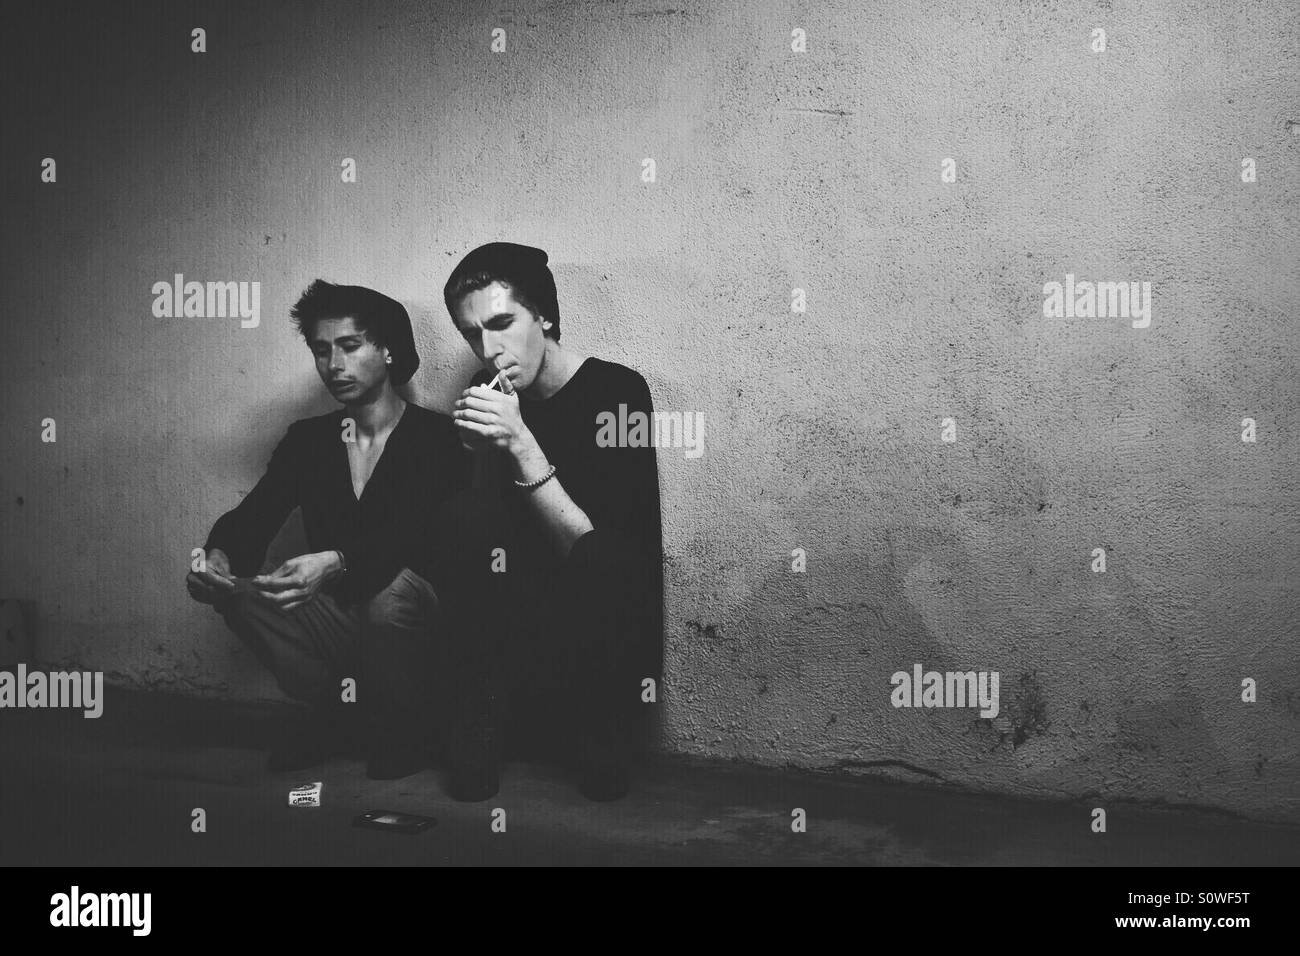 Two young men in black sit against a brick wall. - Stock Image